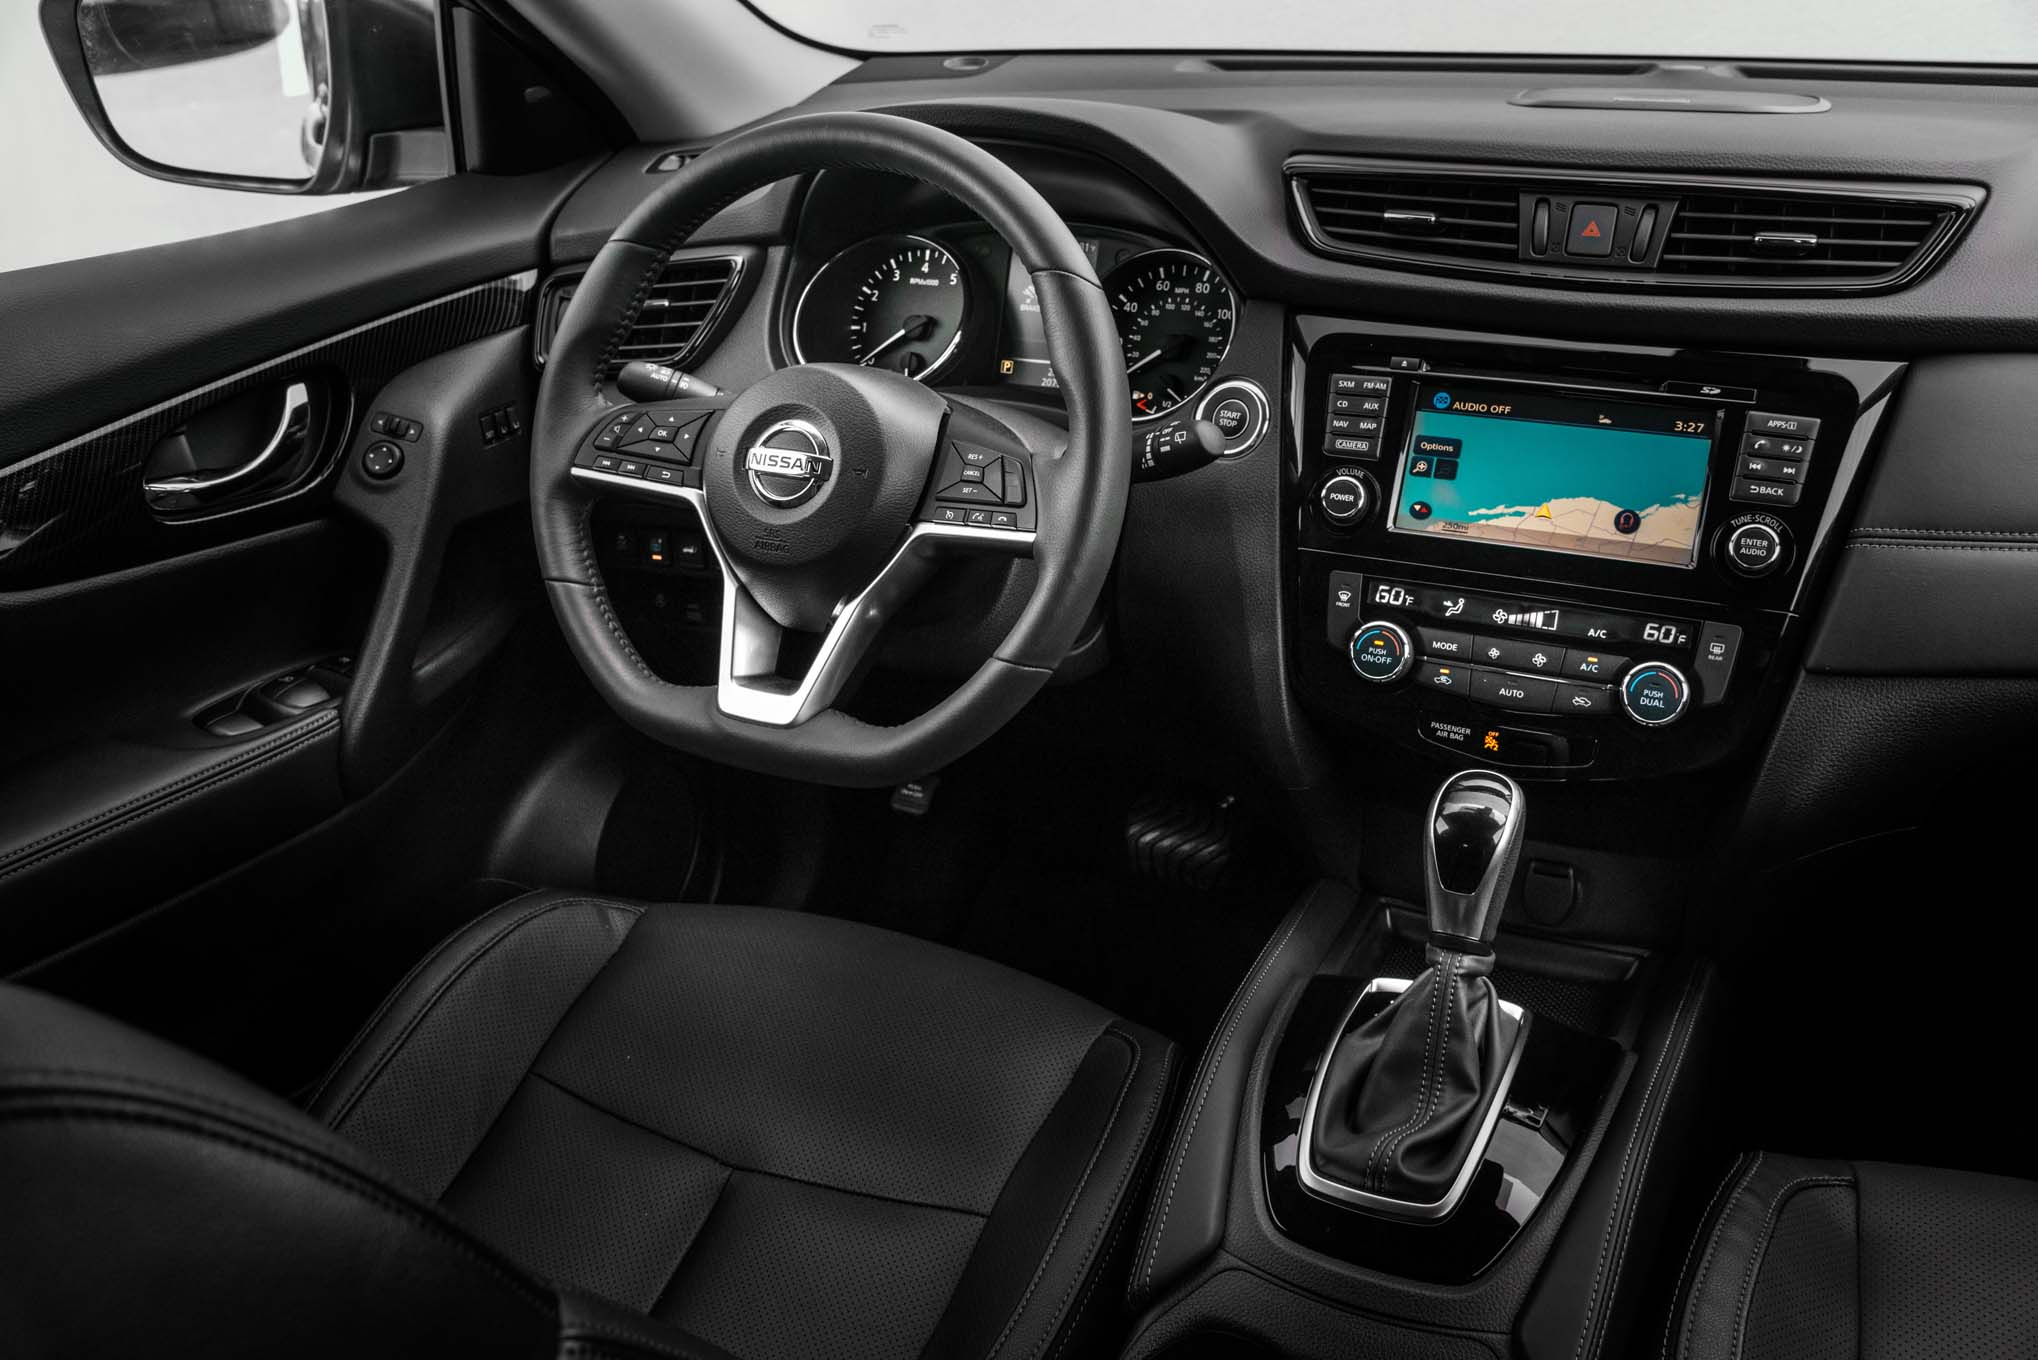 2018 Nissan Rogue Hybrid Gets Small Price Hike and an Extra USB Port ...